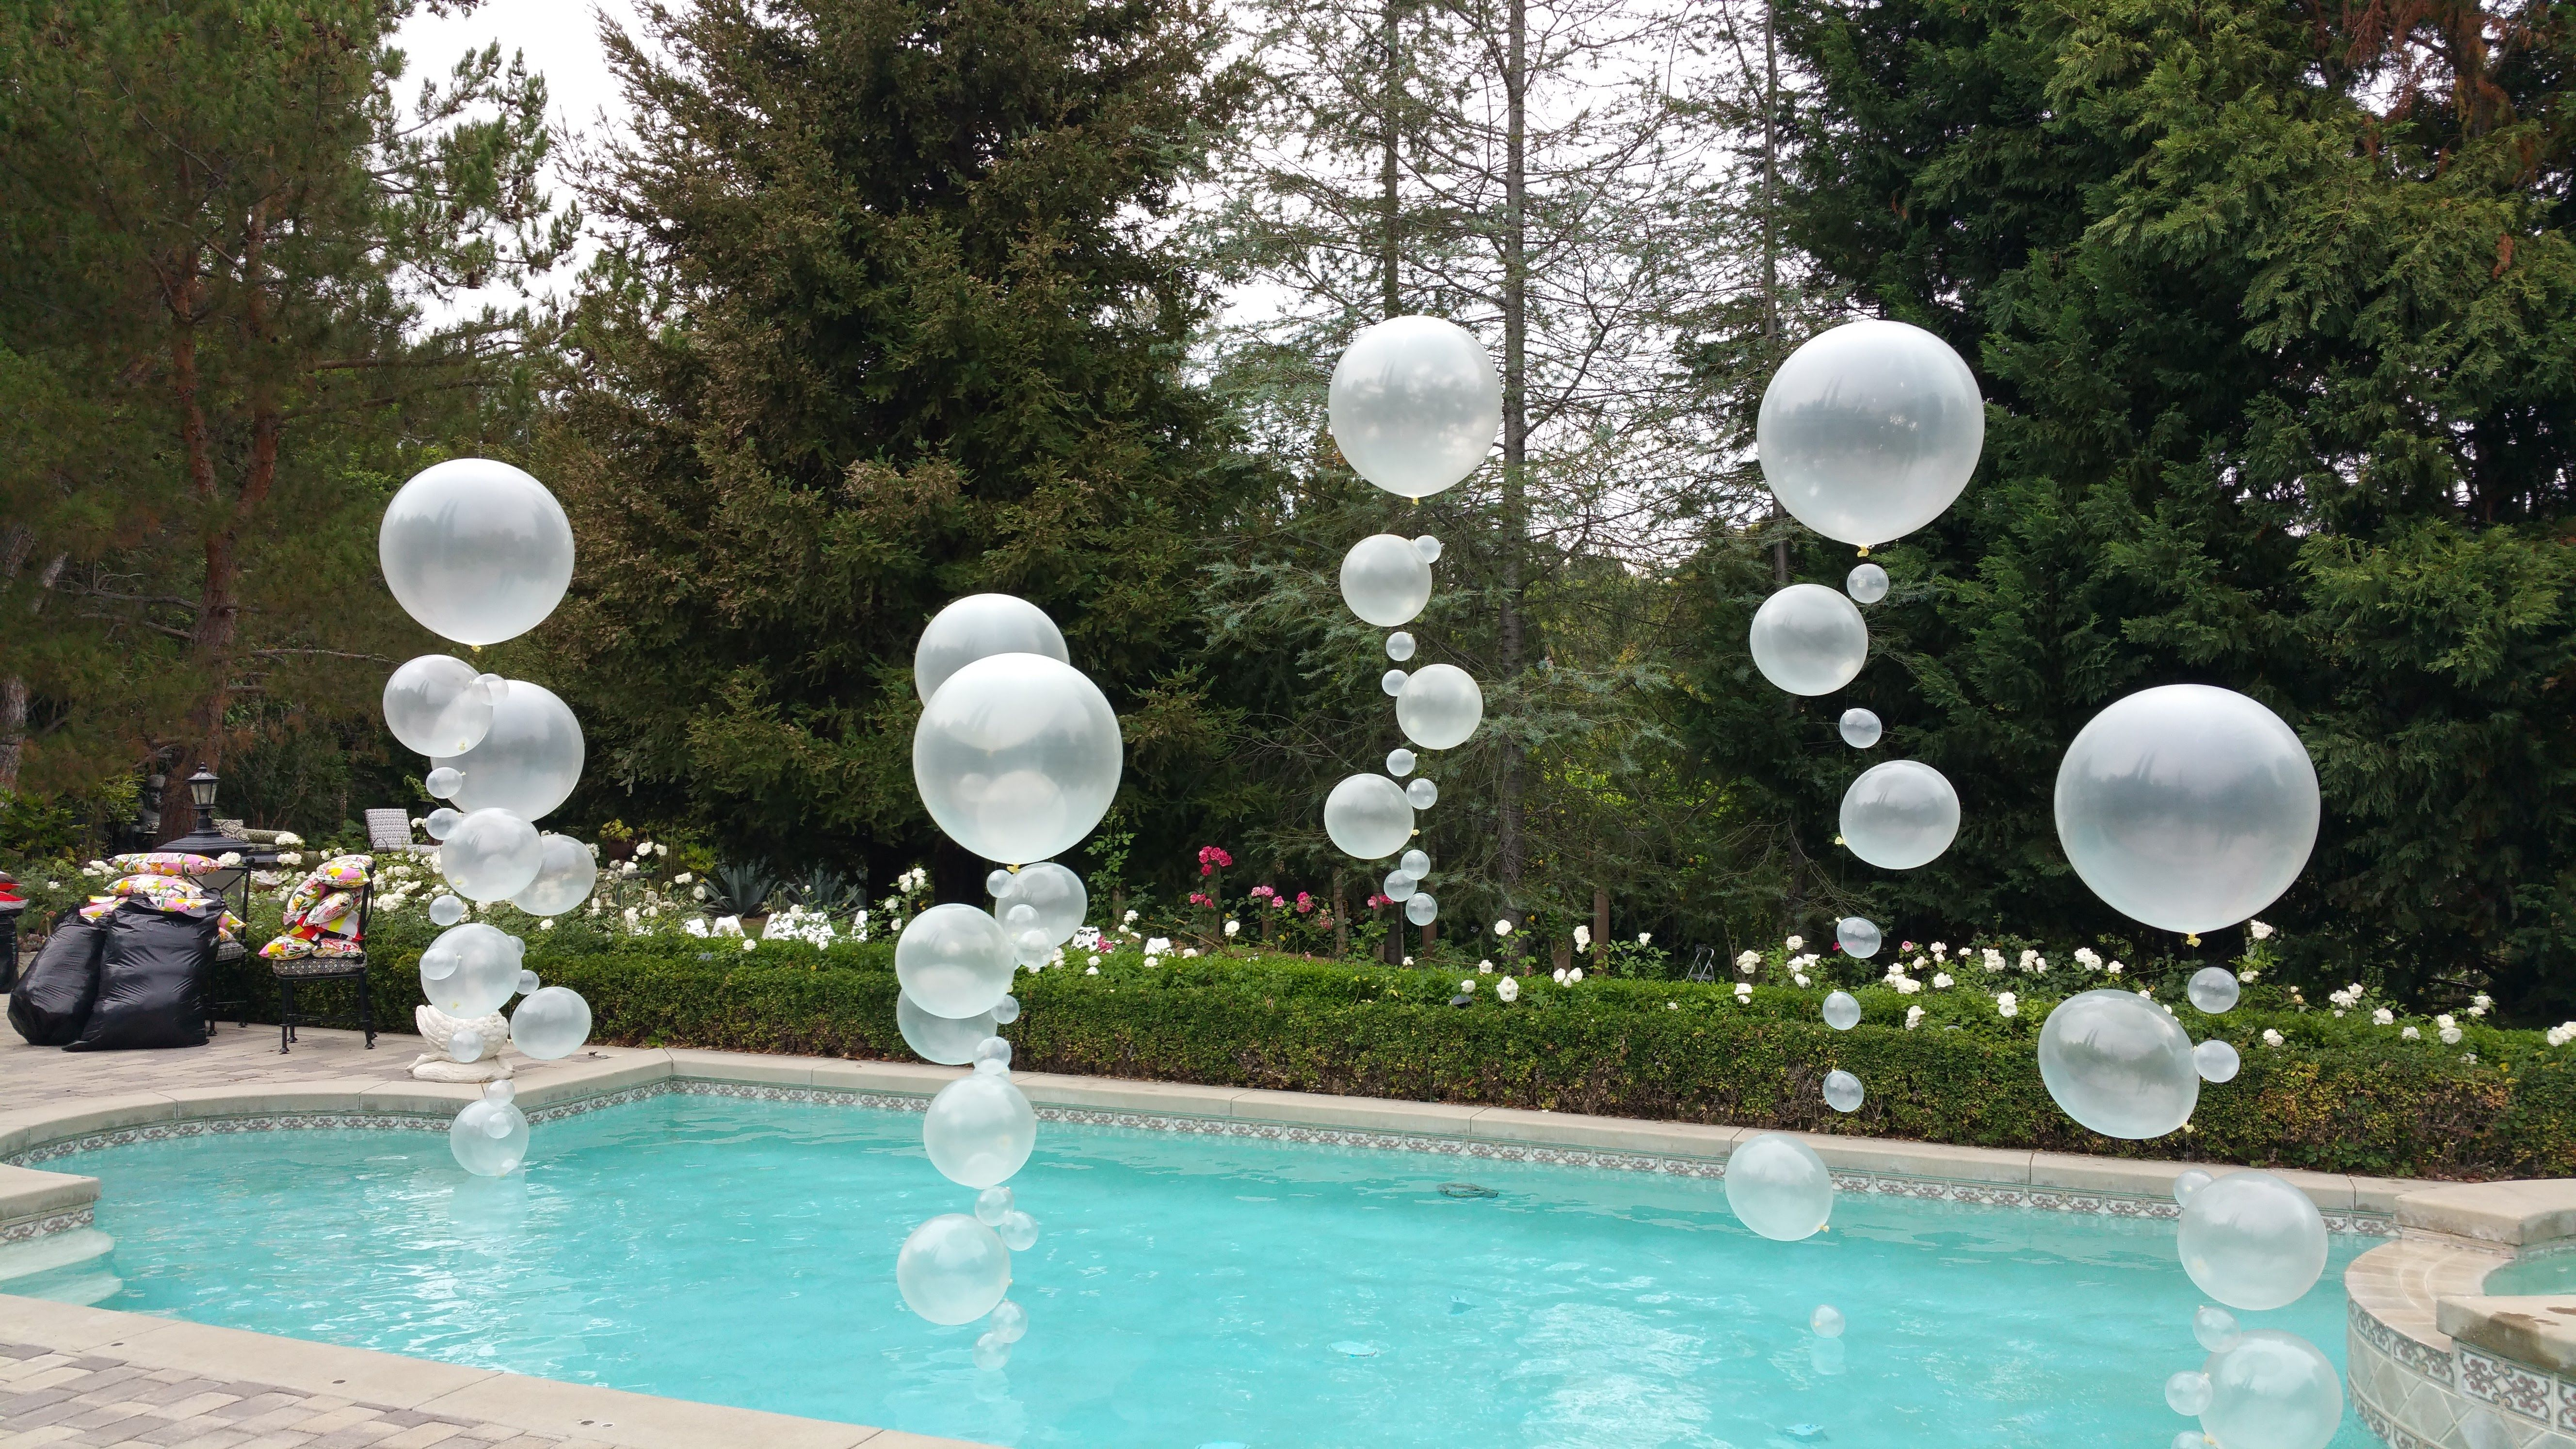 Make A Splash By Adding Some Bubbles To Your Pool For Your Next